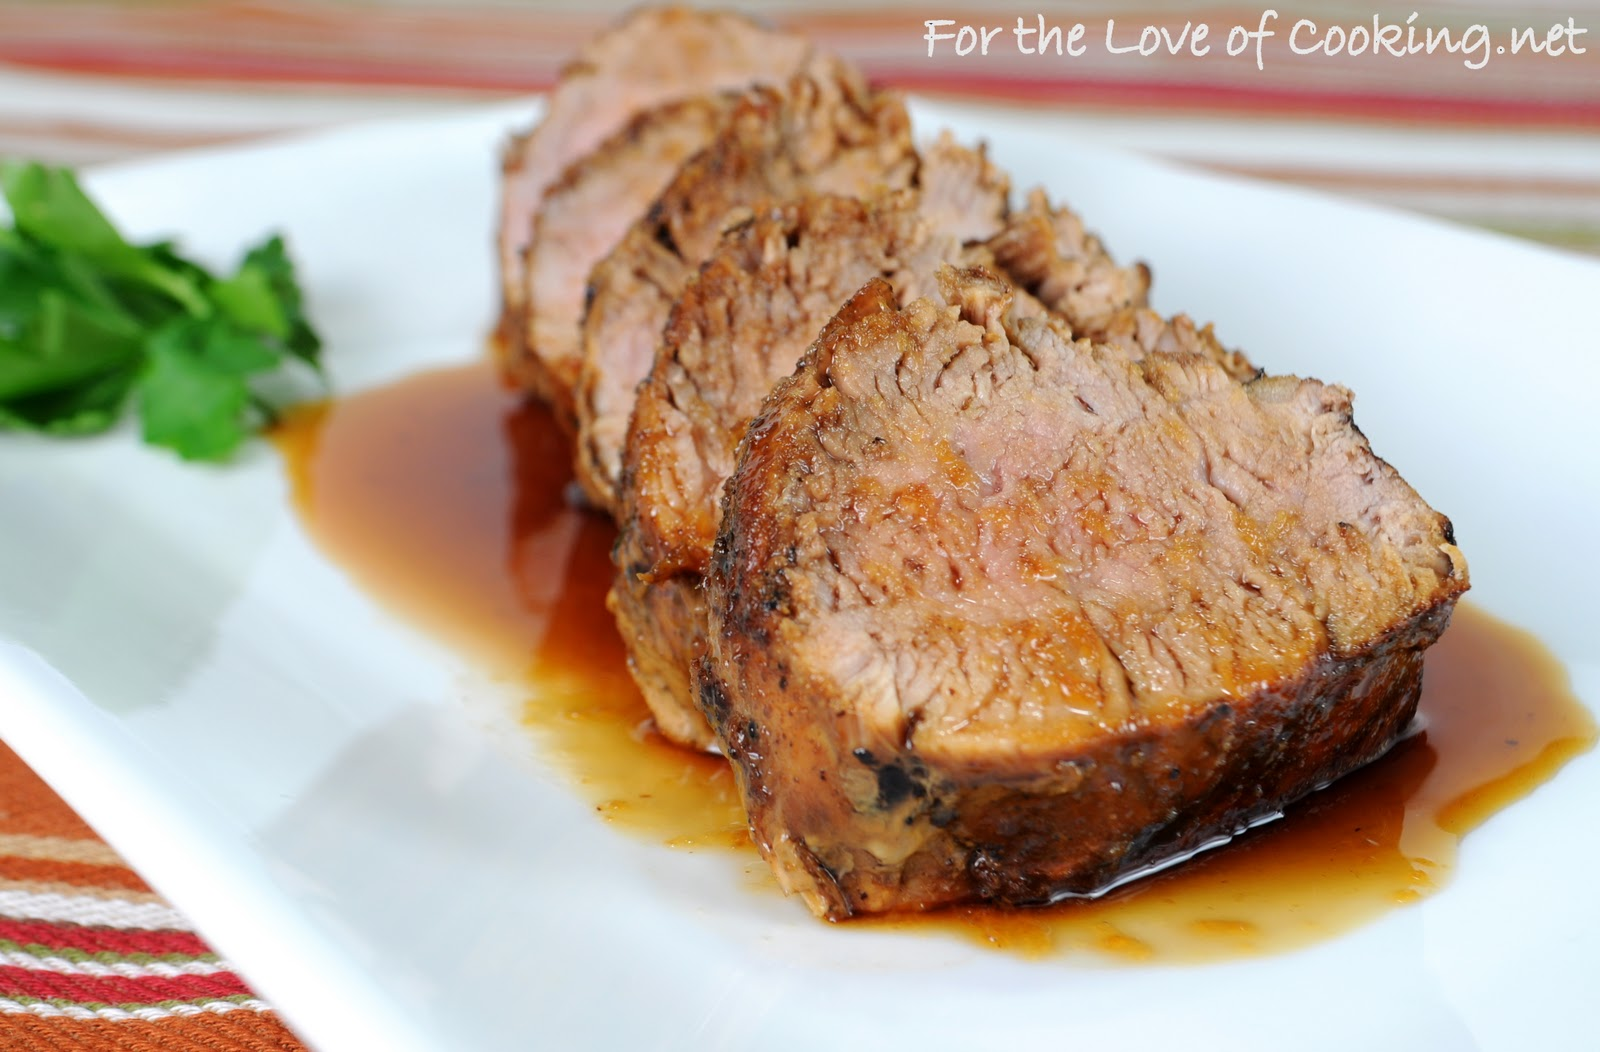 Pan Grilled Ginger-Honey Pork Tenderloin | For the Love of Cooking